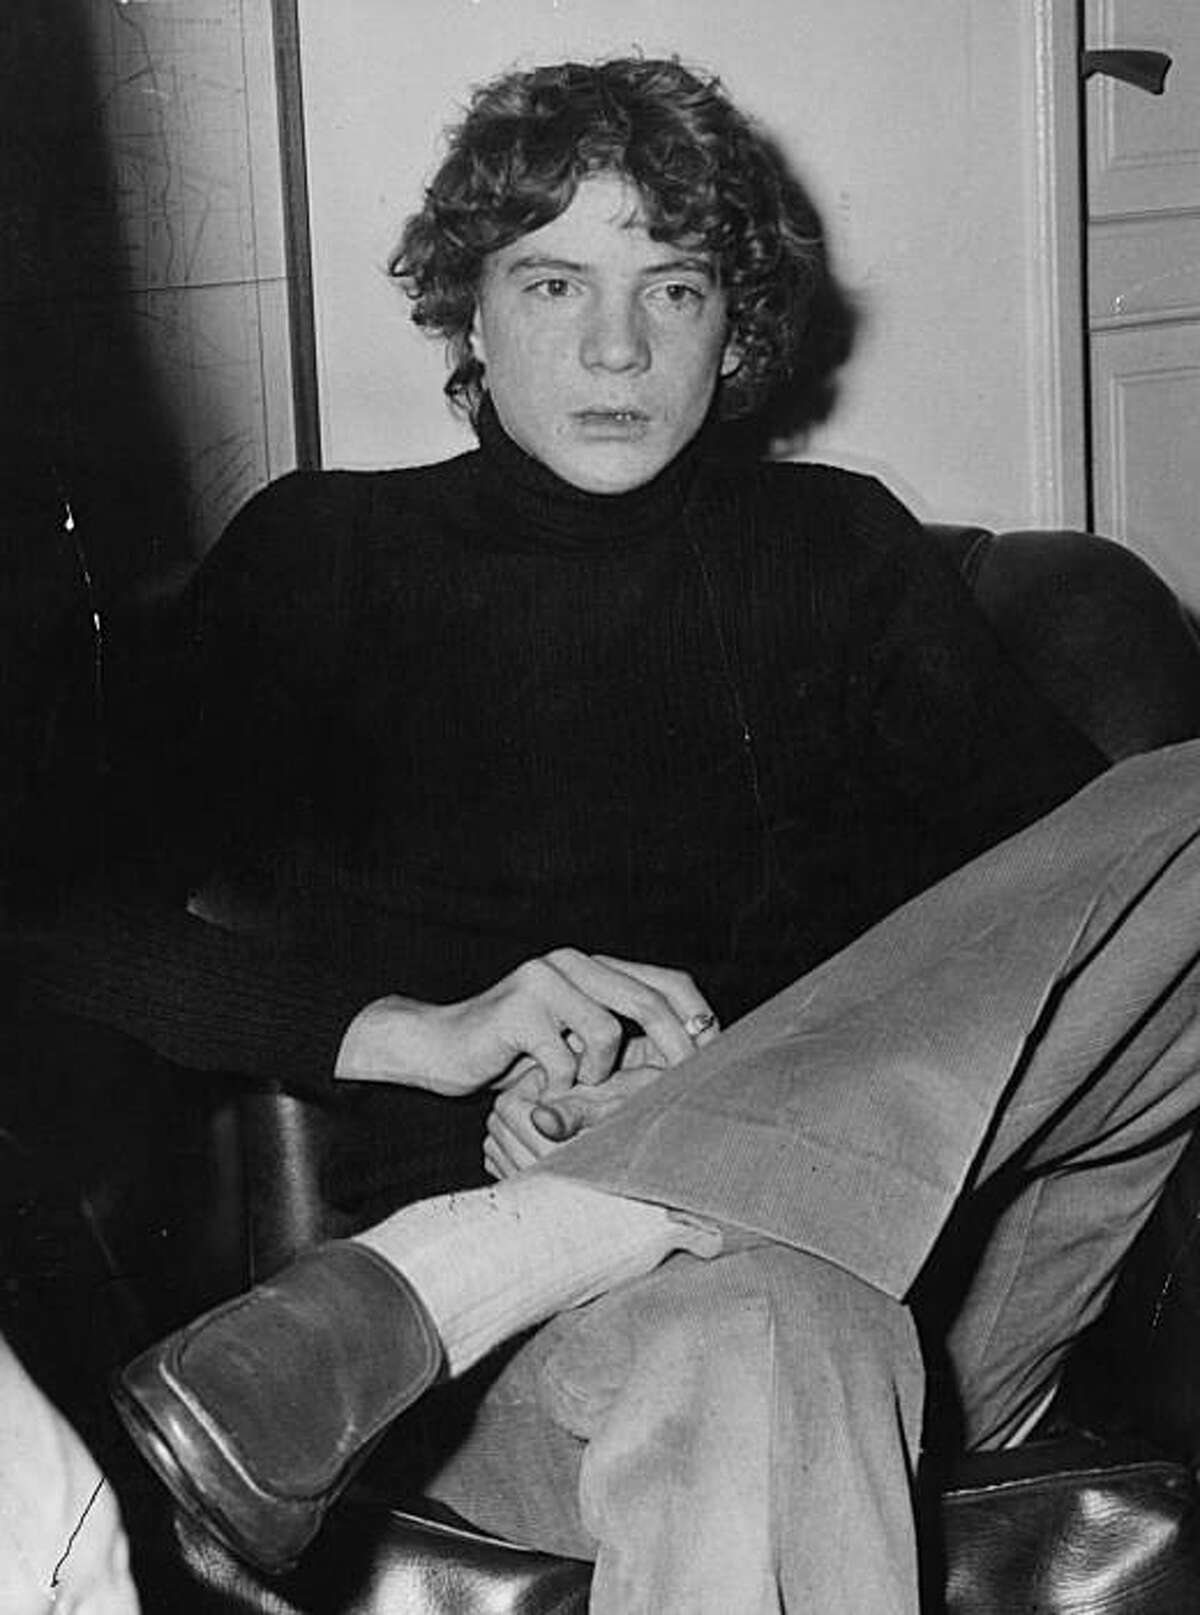 DECEMBER 21, 1973: J. Paul Getty III is shown December 21, 1973. Getty, grandson of the oil magnate J. Paul Getty, died in Buckinghamshire, England, according to a statement from his actor-son, Balthazar Getty February 7, 2011. He was 54.